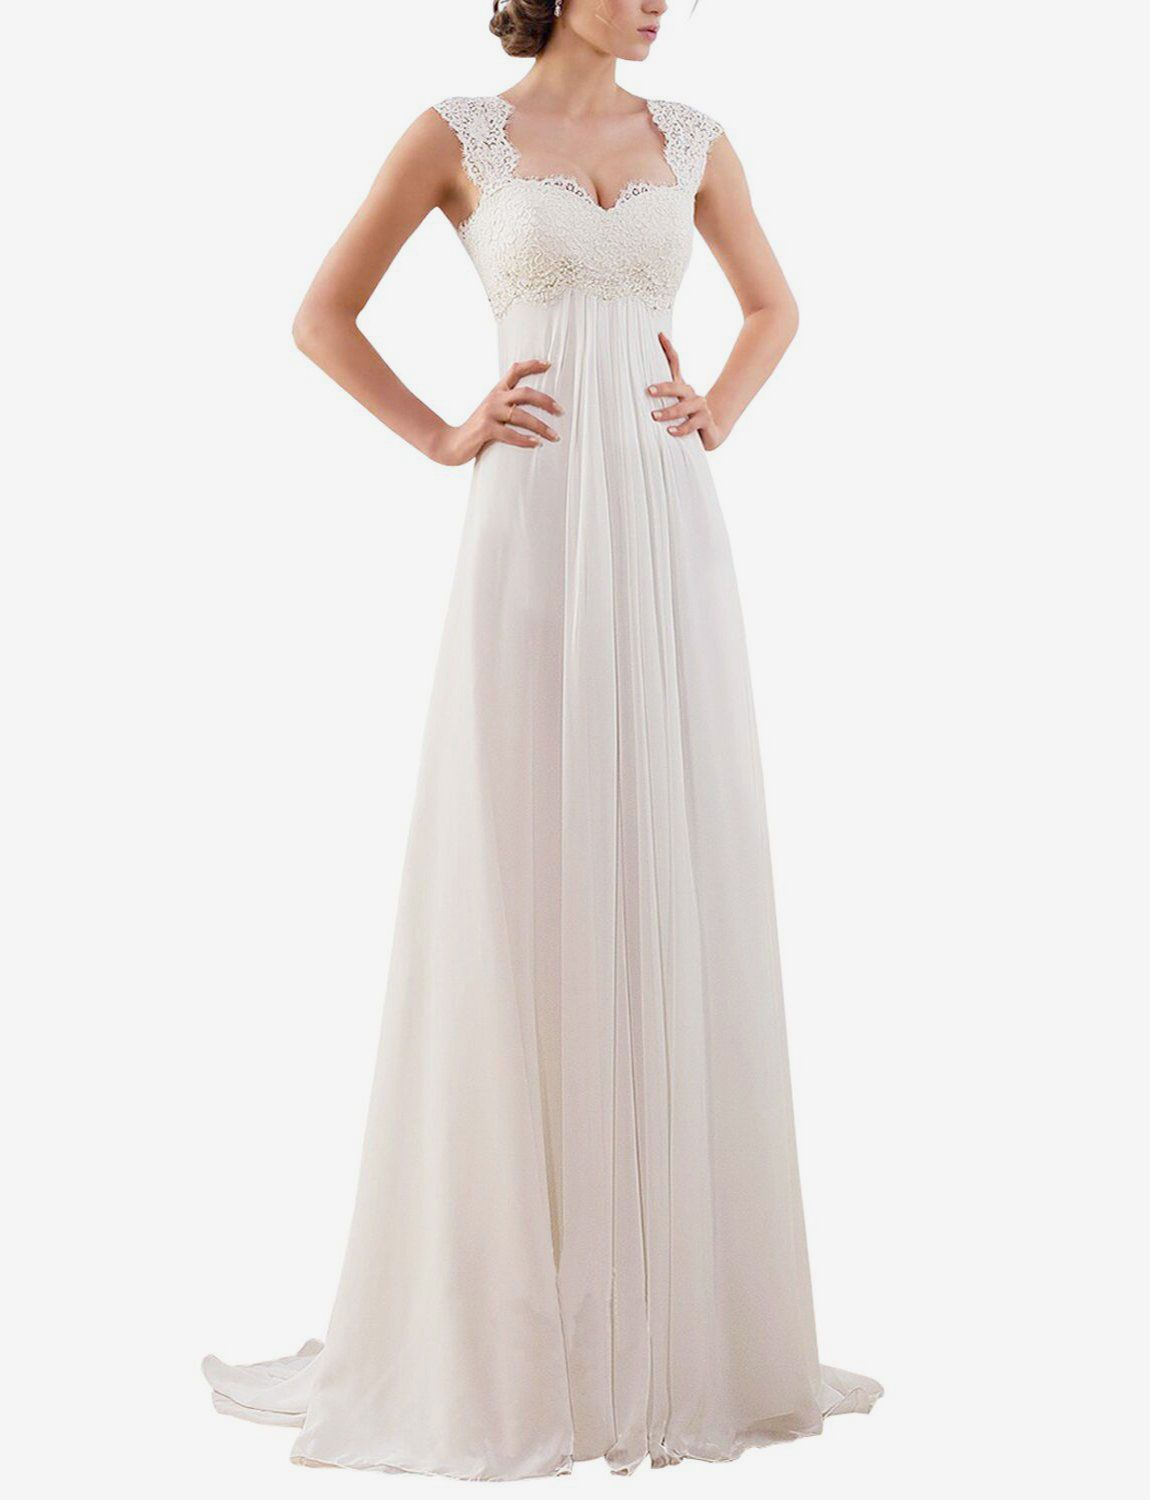 Erosebridal Sleeveless Lace Chiffon Bridal Gown